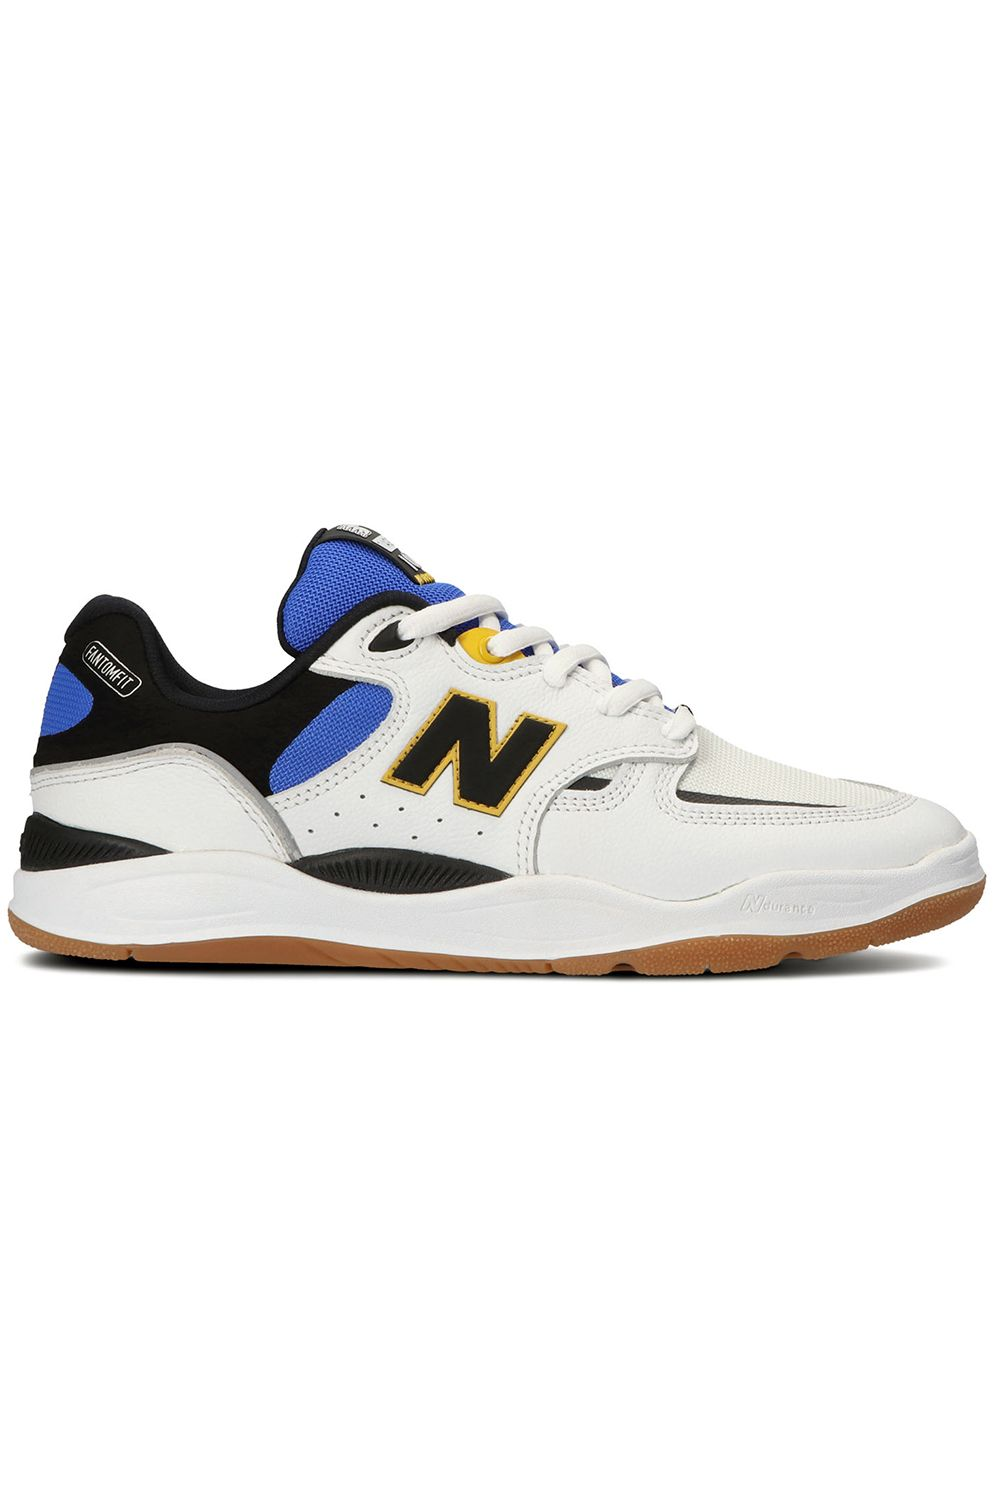 Tenis New Balance NM1010 Tiago Lemos